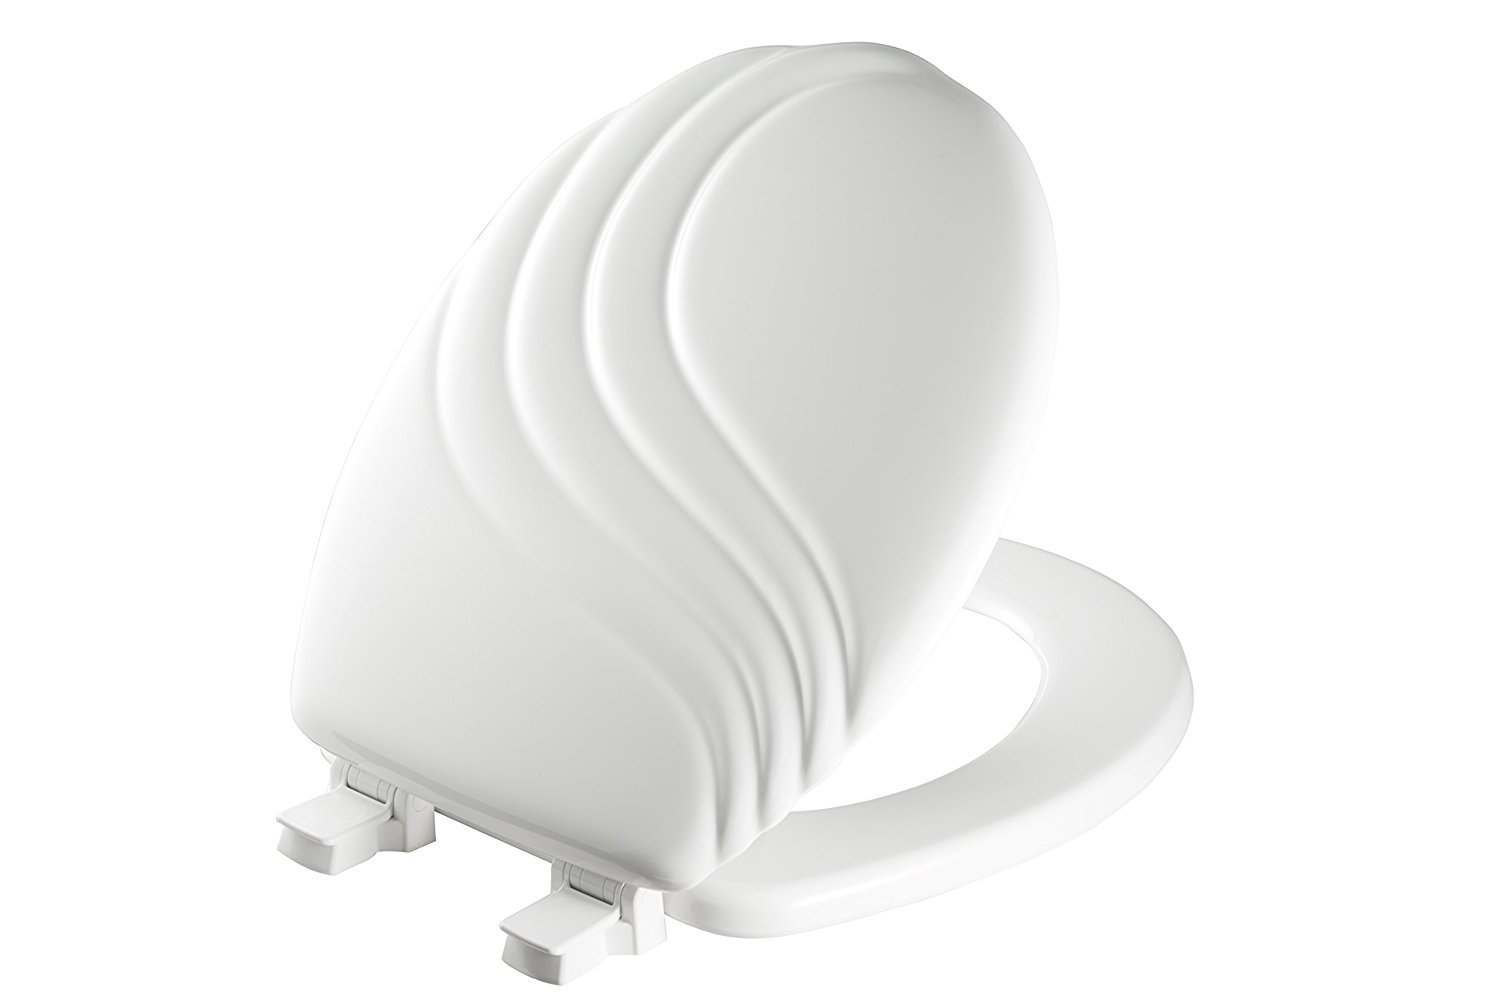 MAYFAIR 27ECA 000 Sculptured Swirl Toilet Seat will Never Loosen and Easily Remove, ROUND, Durable Enameled Wood, White